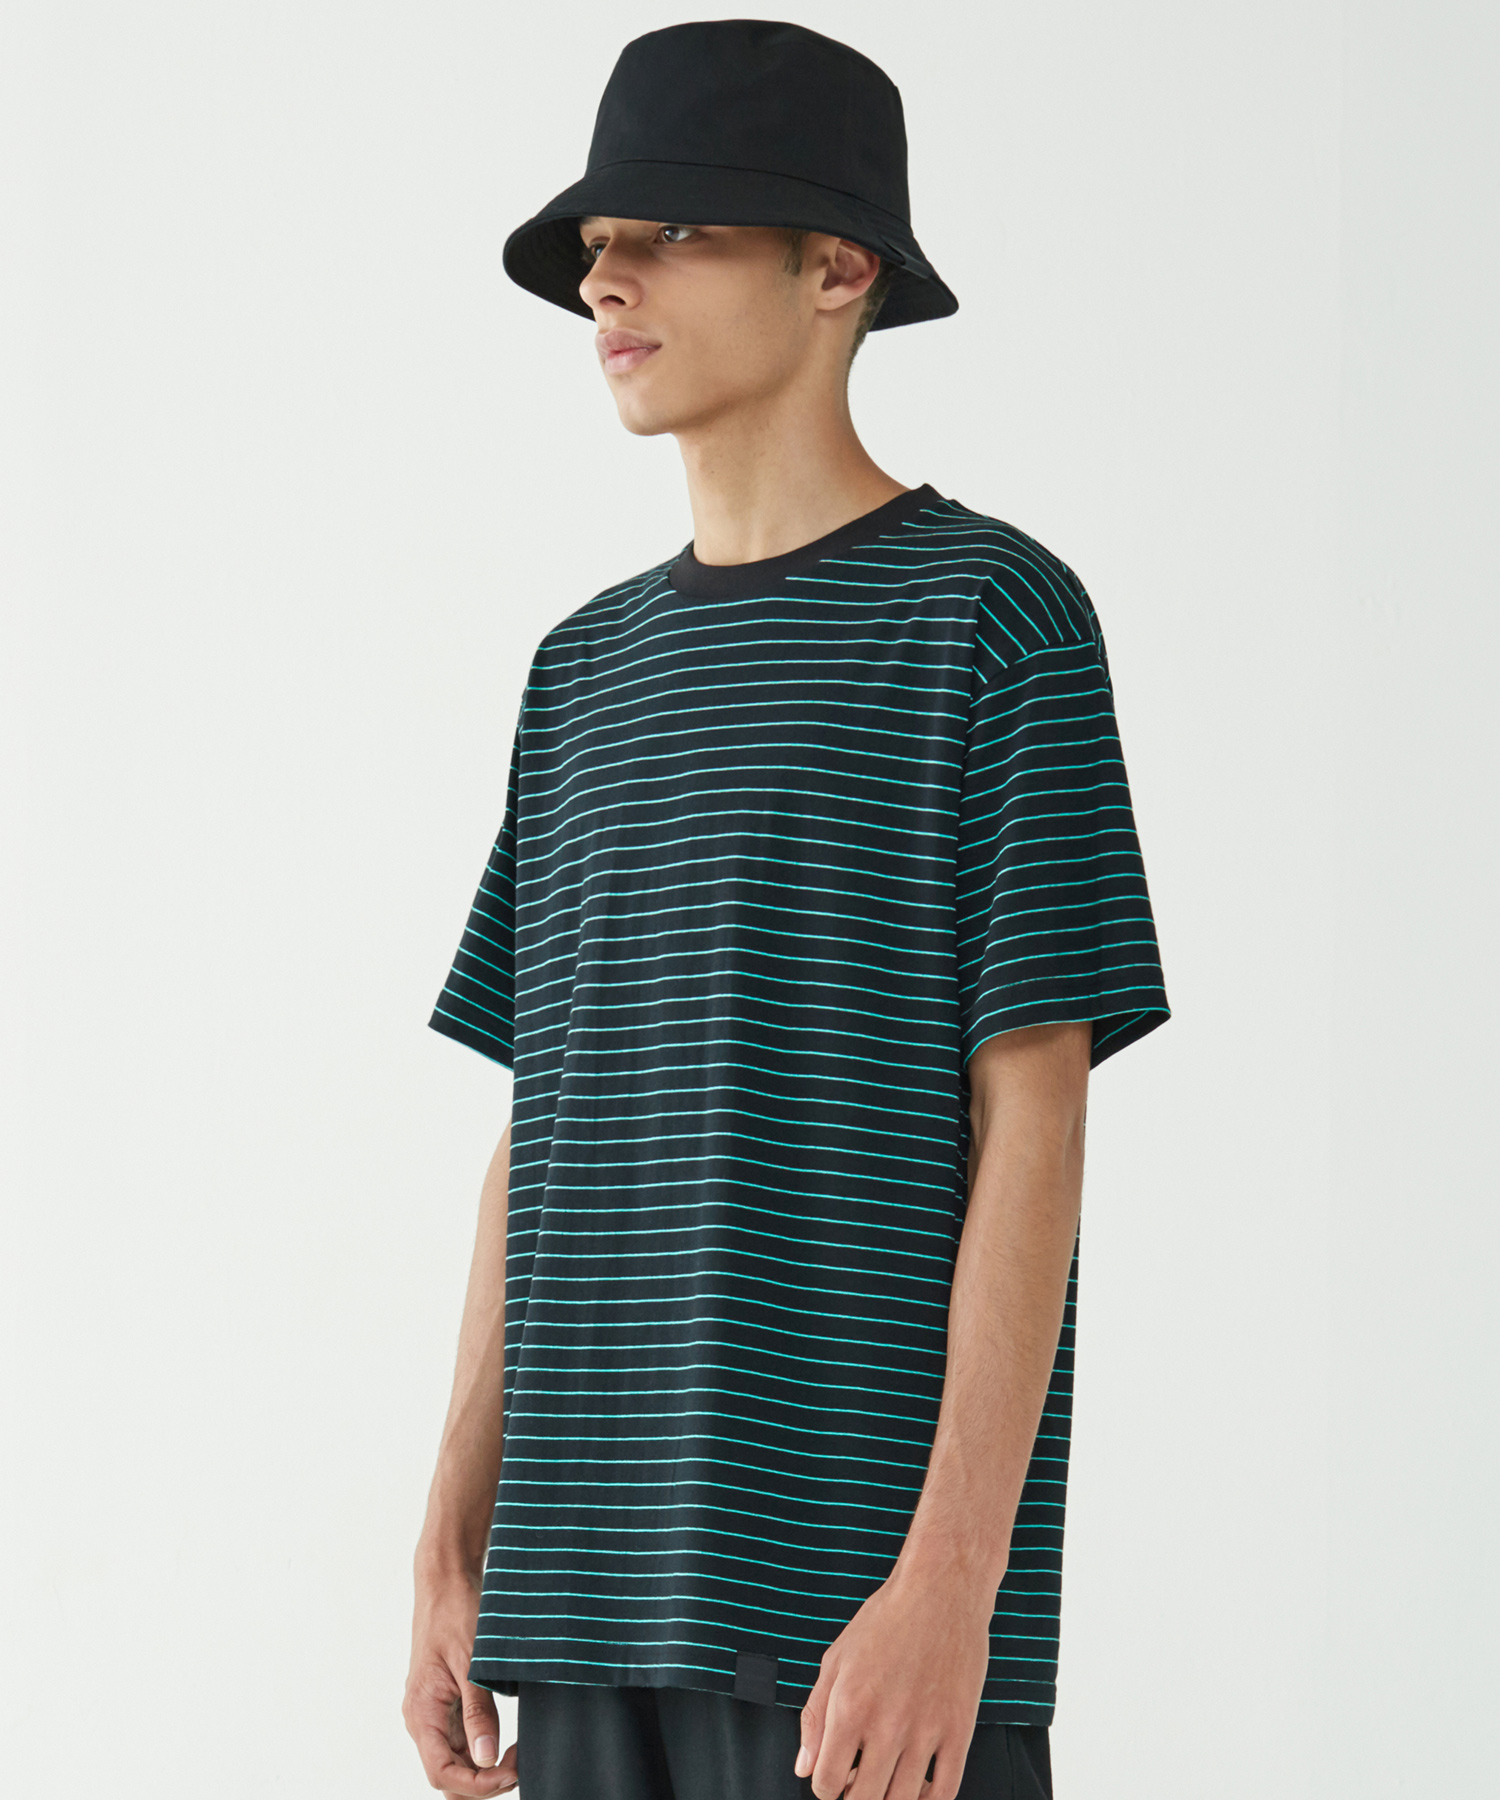 Narrow Stripe Tee (Mint)